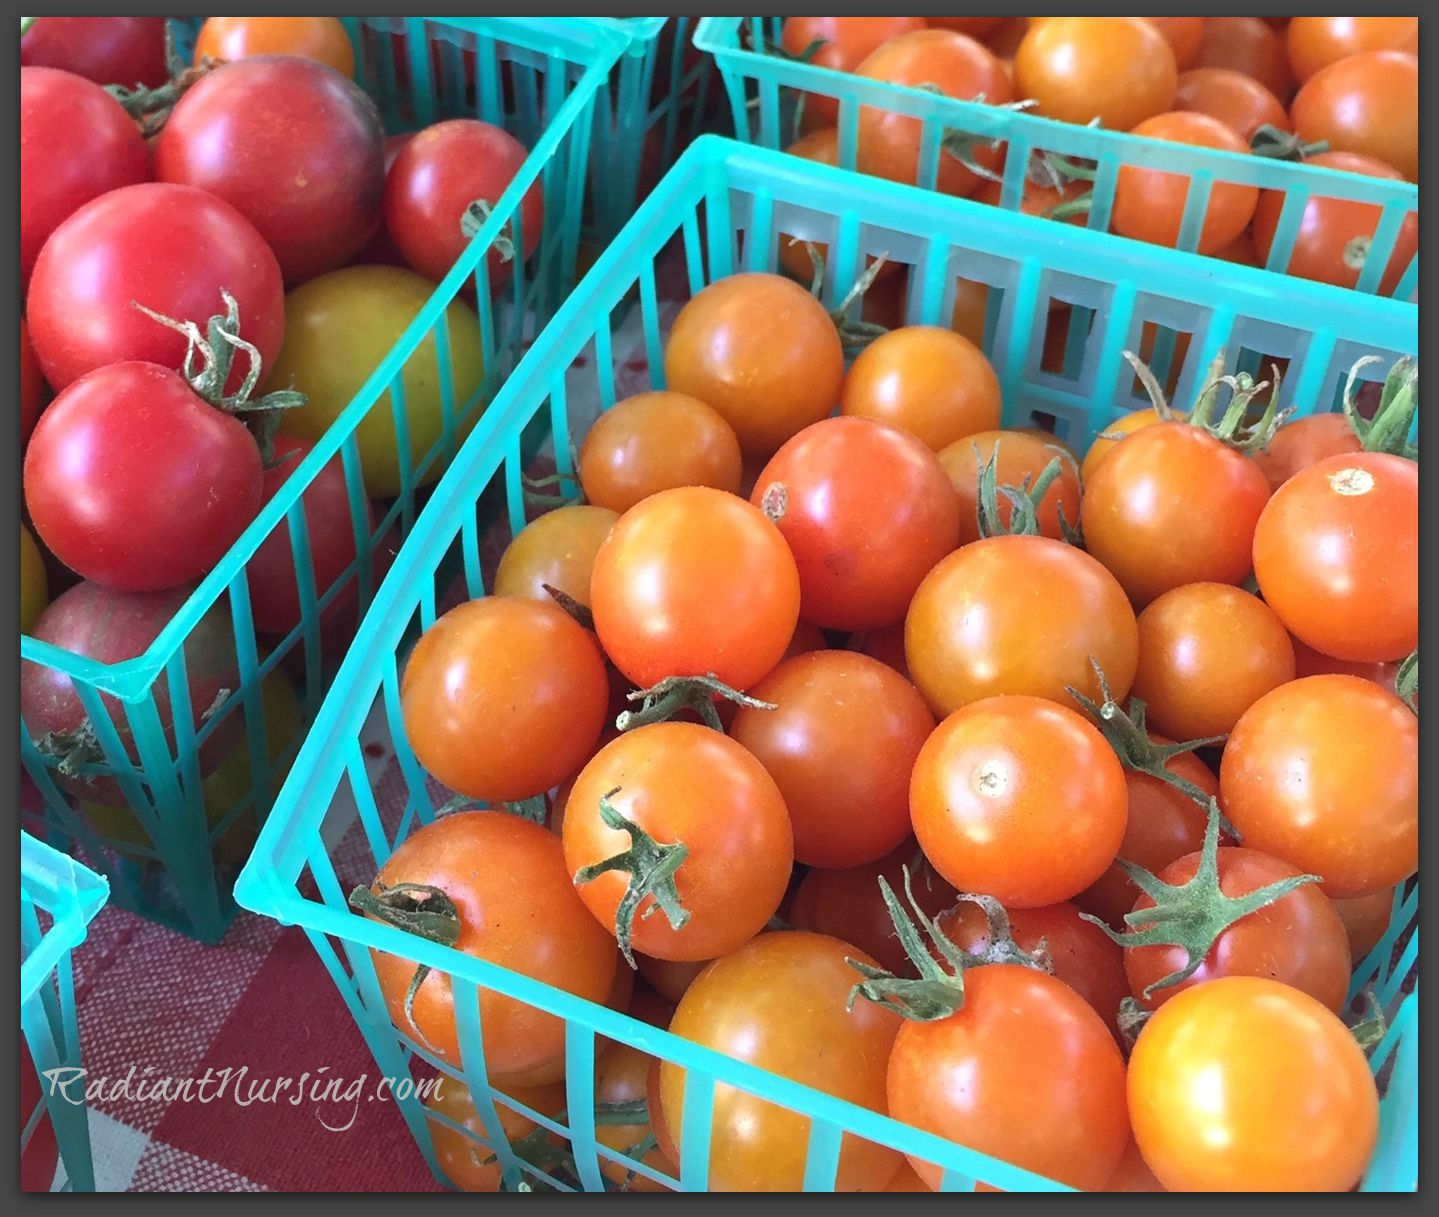 Cherry tomatoes from the Davis farmers market. Eating fresh and organic.